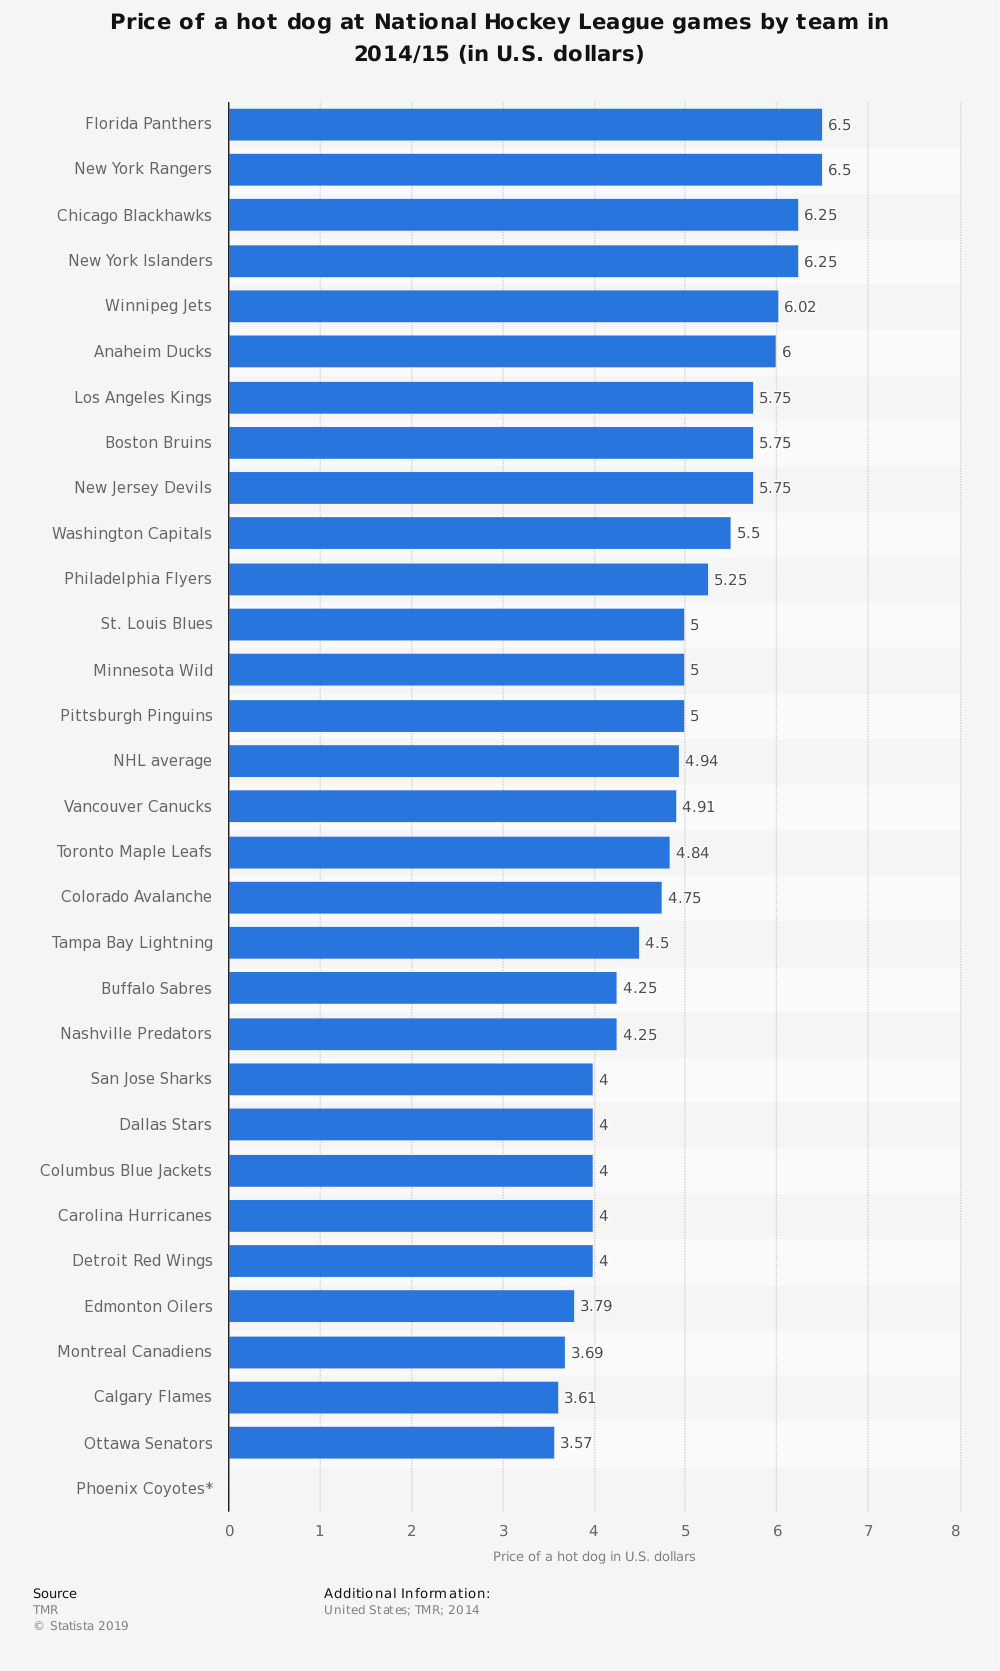 Statistic: Price of a hot dog at National Hockey League games by team in 2014/15 (in U.S. dollars) | Statista